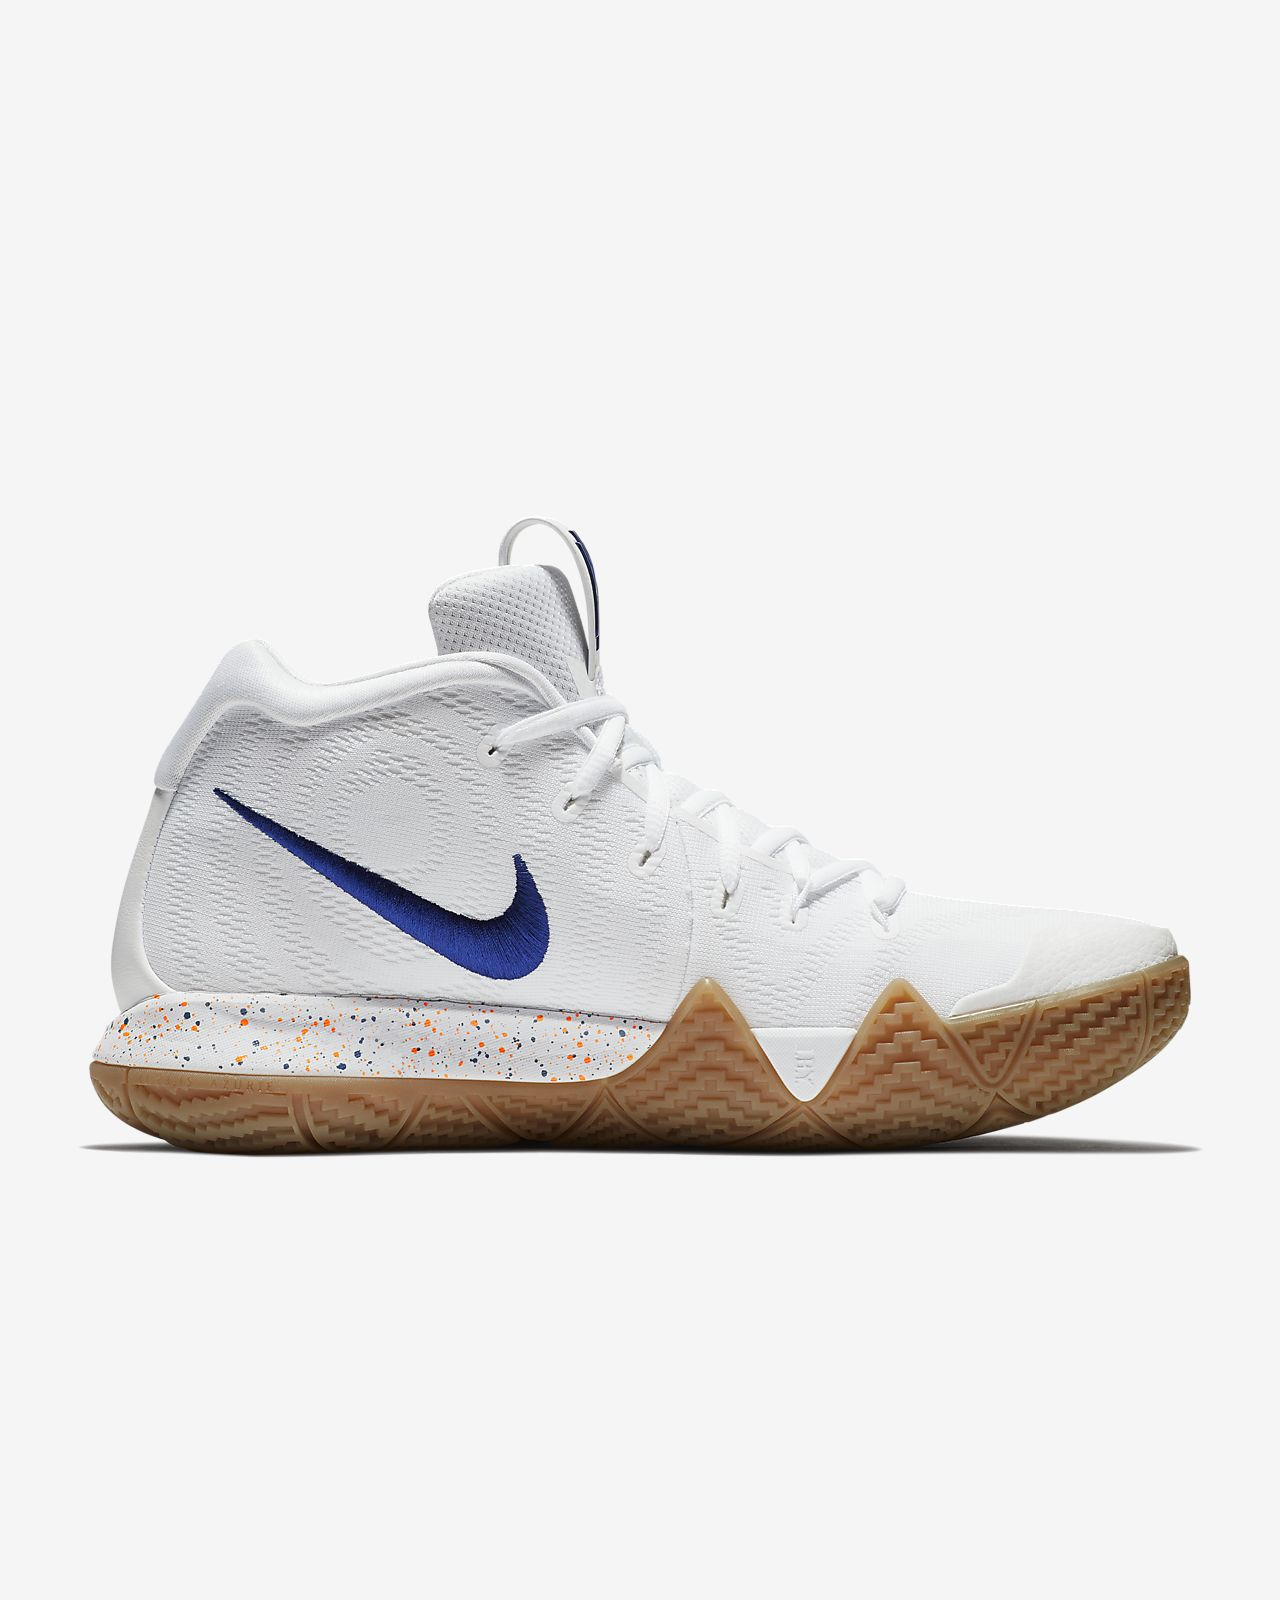 on sale 9216f 3d777 Kyrie 4 'Uncle Drew' Basketball Shoe